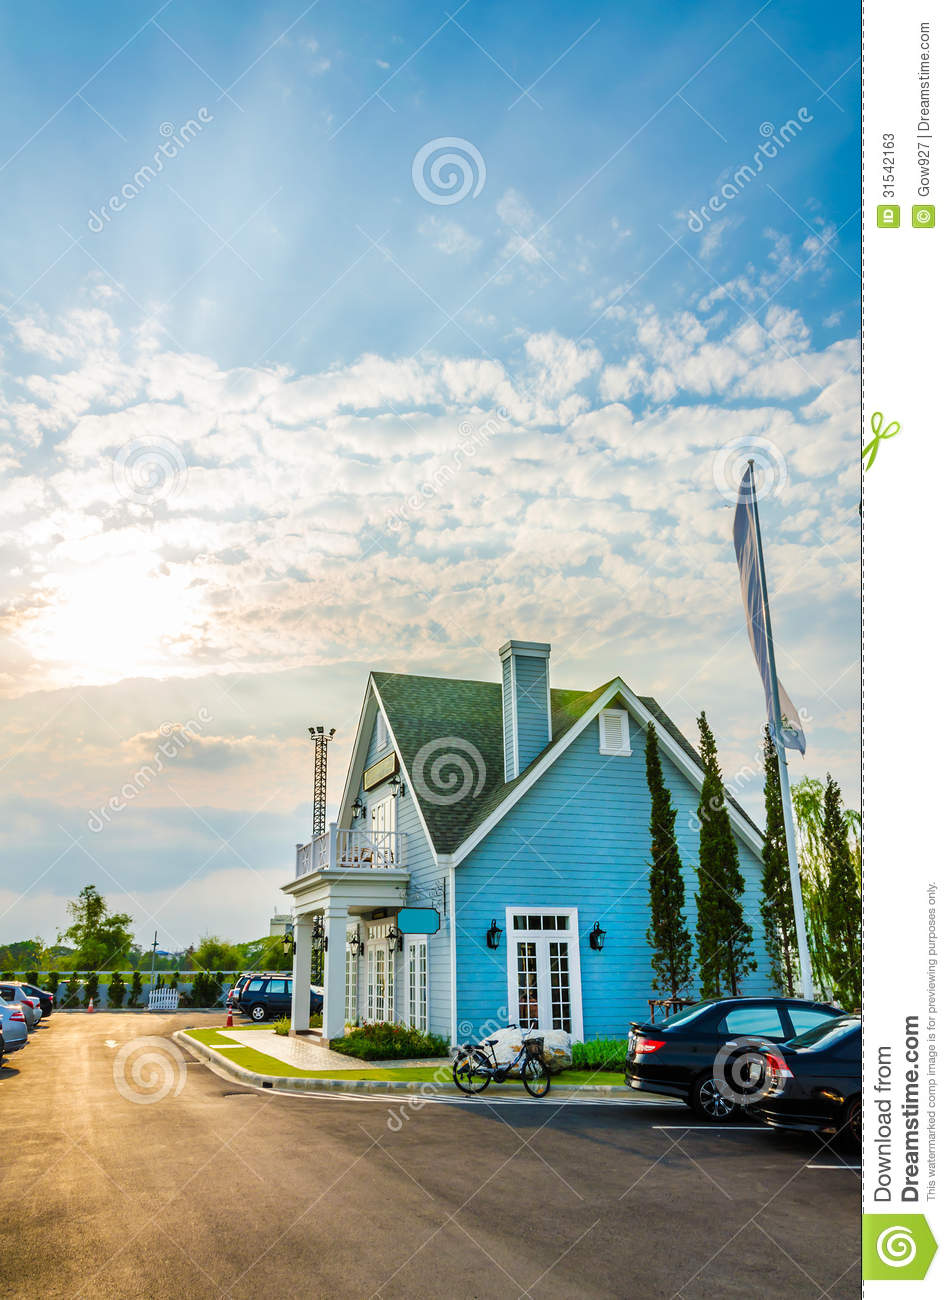 Classic american house in the sunset stock photos image for Classic american architecture